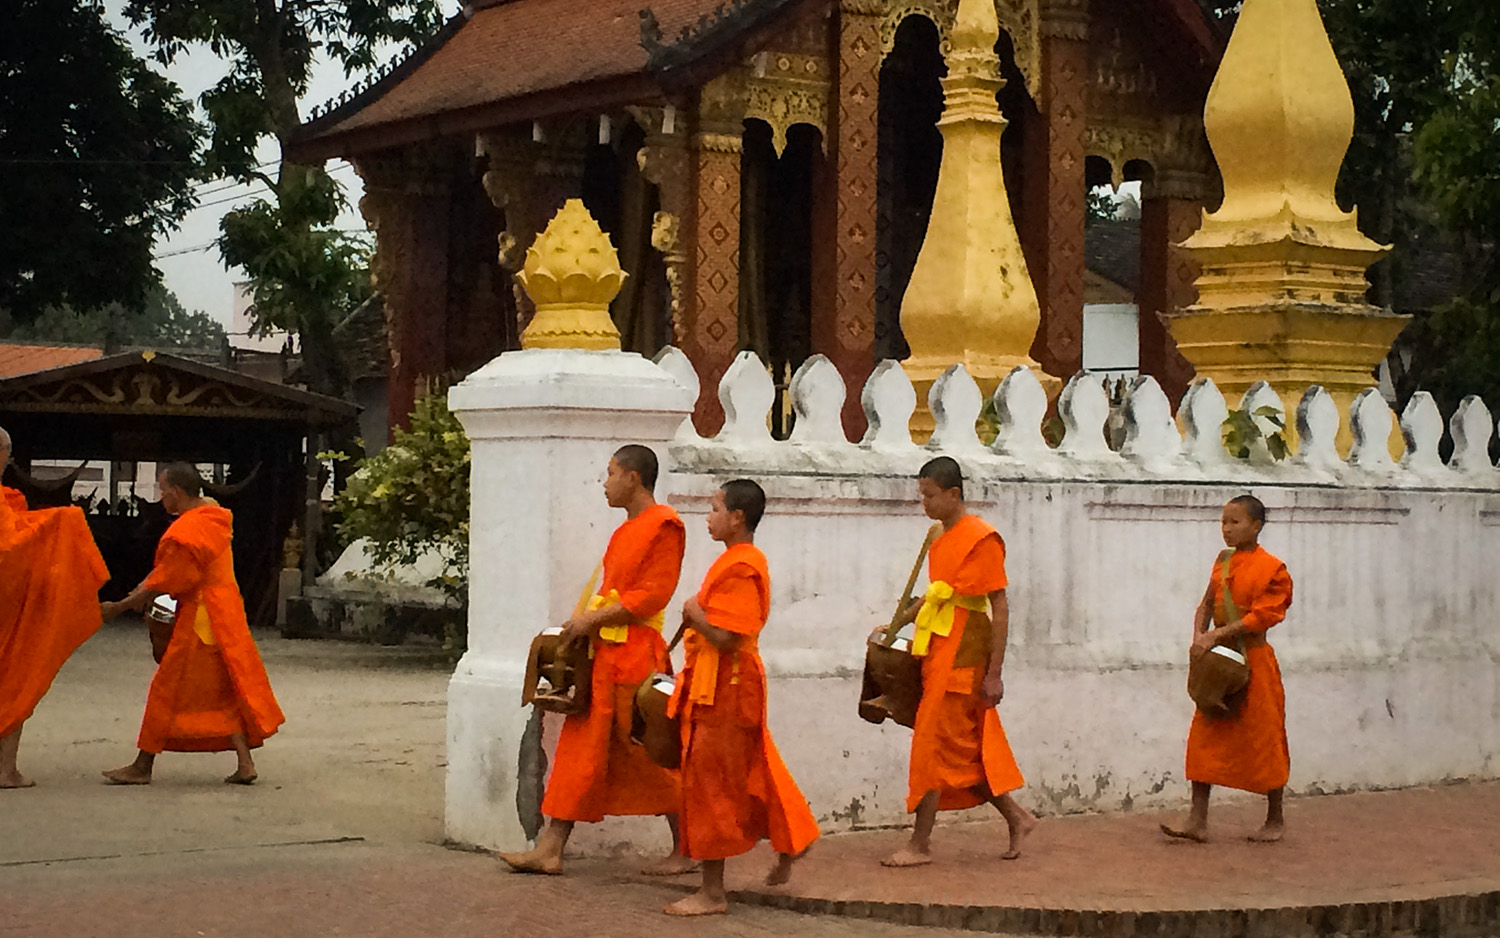 Monks returning to their temple after the tak bat. Photo by Johanna Read TravelEater.net